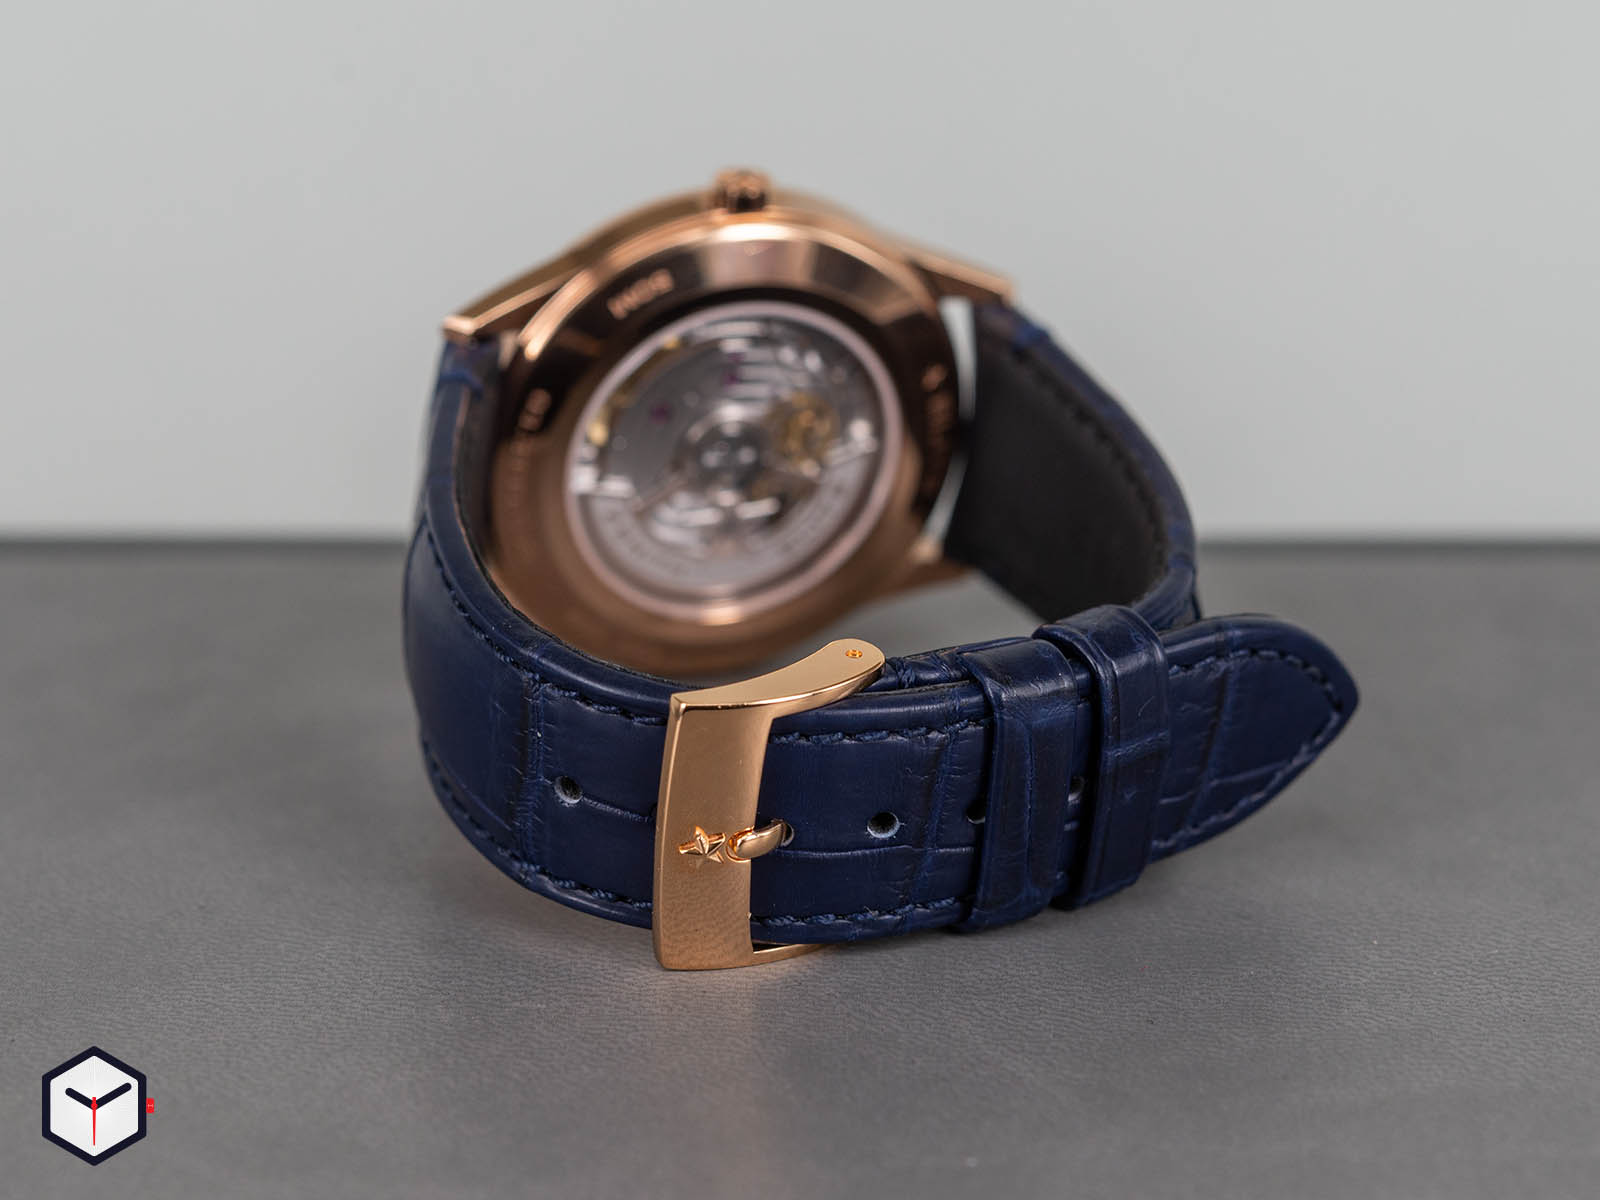 18-3100-692-01-c922-zenith-elite-moonphase-5.jpg